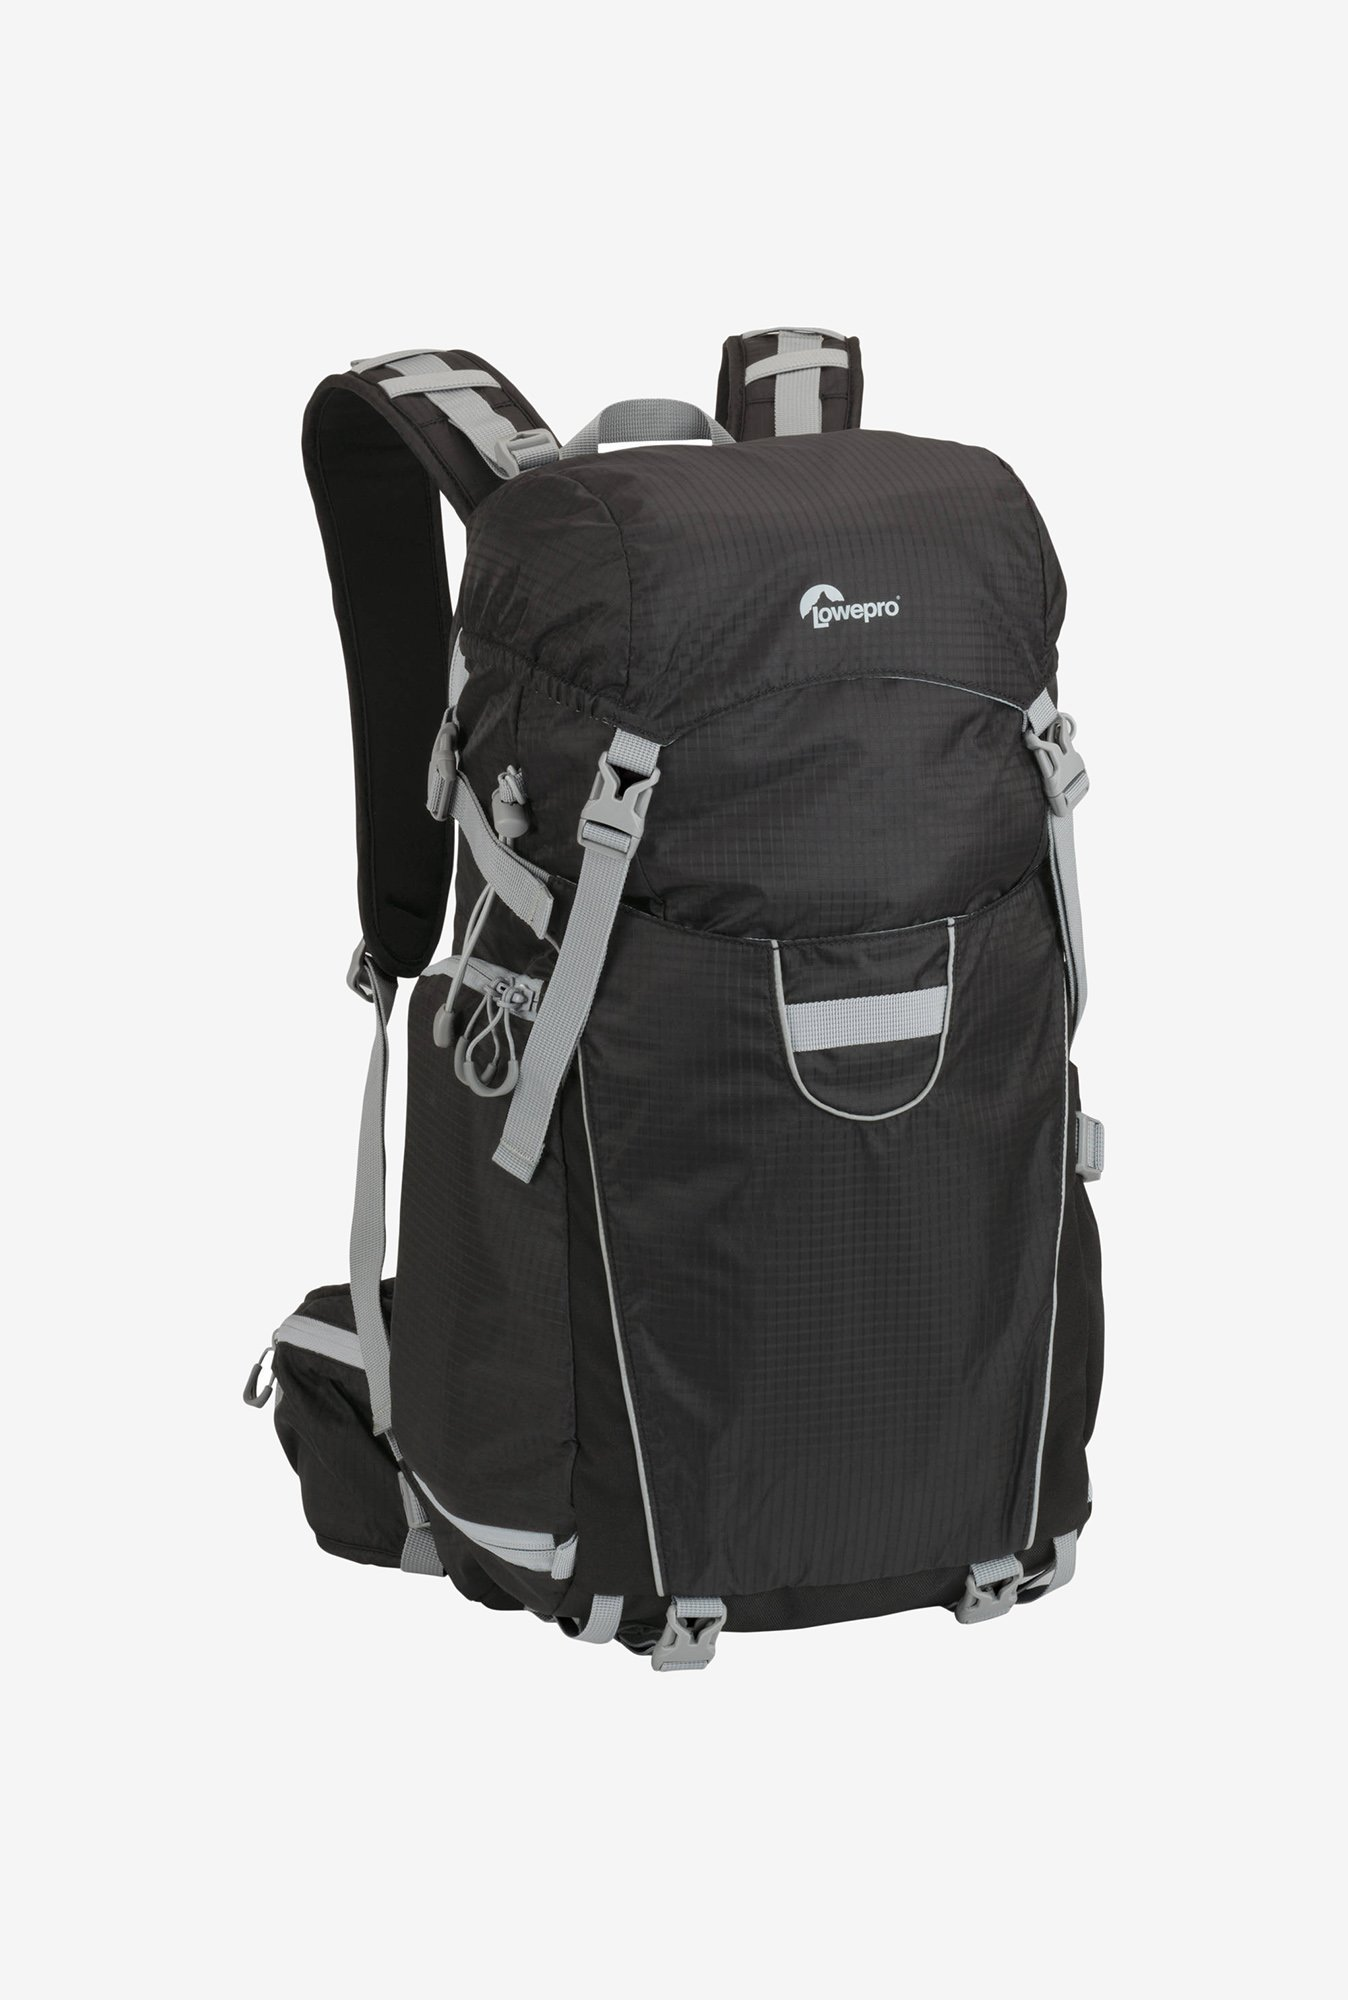 Lowepro Photo Sport 200AW Backpack Grey